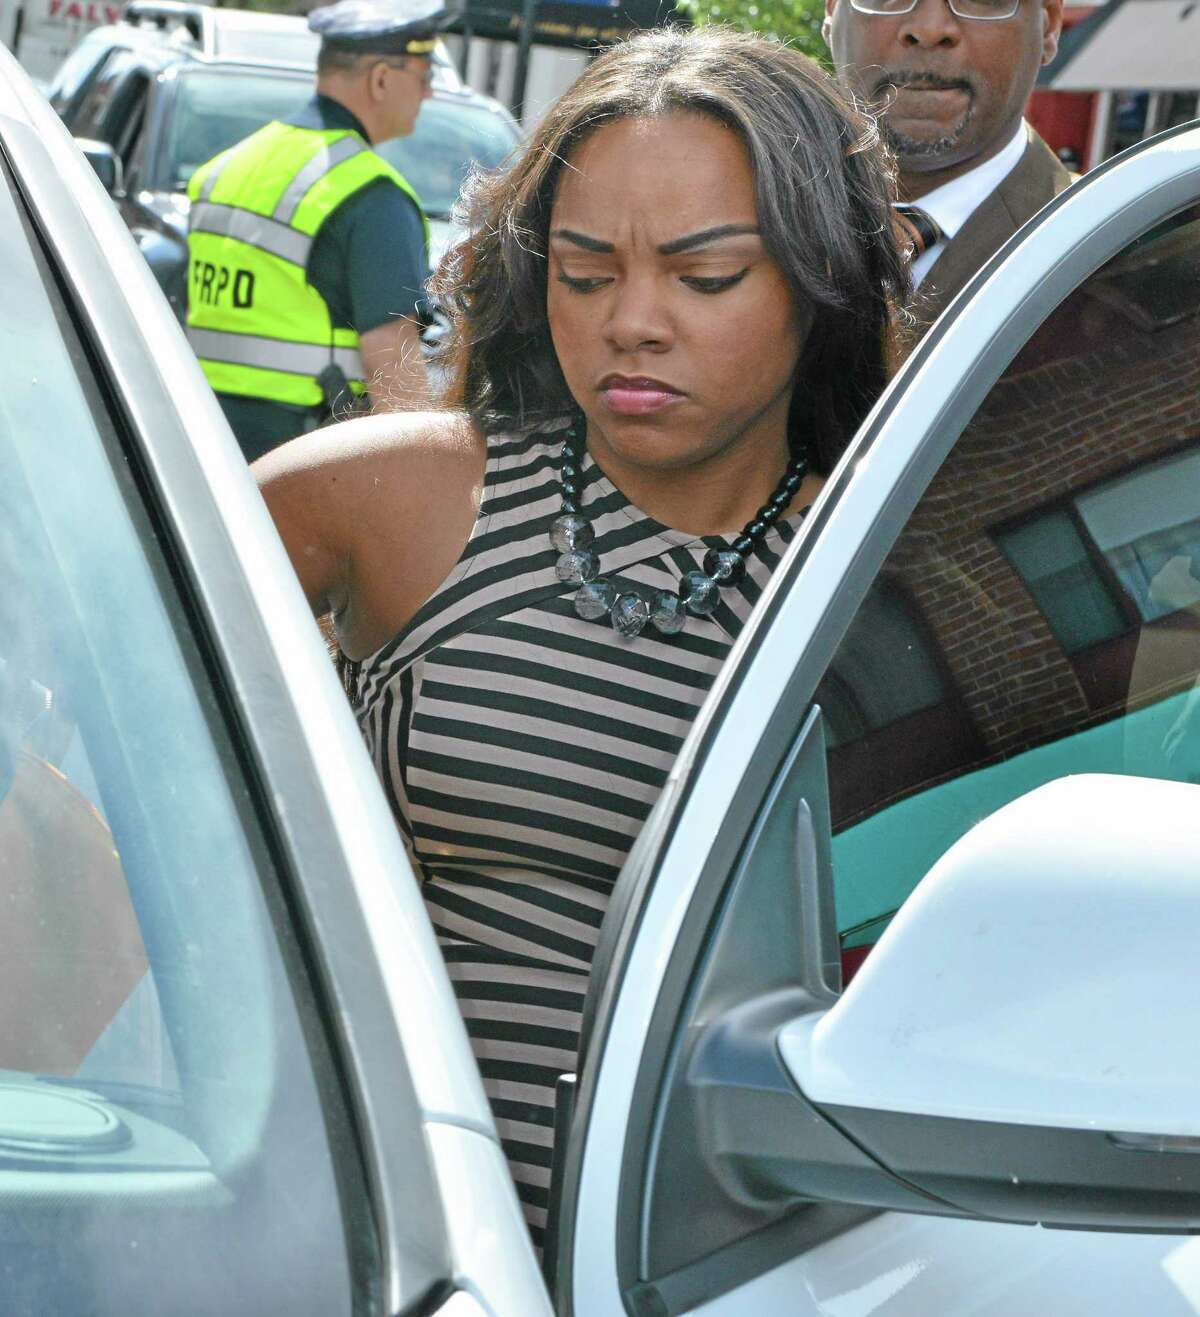 Shayanna Jenkins, fiancee of former New England Patriots player and Bristol native Aaron Hernandez, gets into her car outside superior court in this Sept. 6 file photo. She had another scheduled court appearance Wednesday in Fall River Superior Court after being charged with perjury in connection with the murder case against Hernandez.